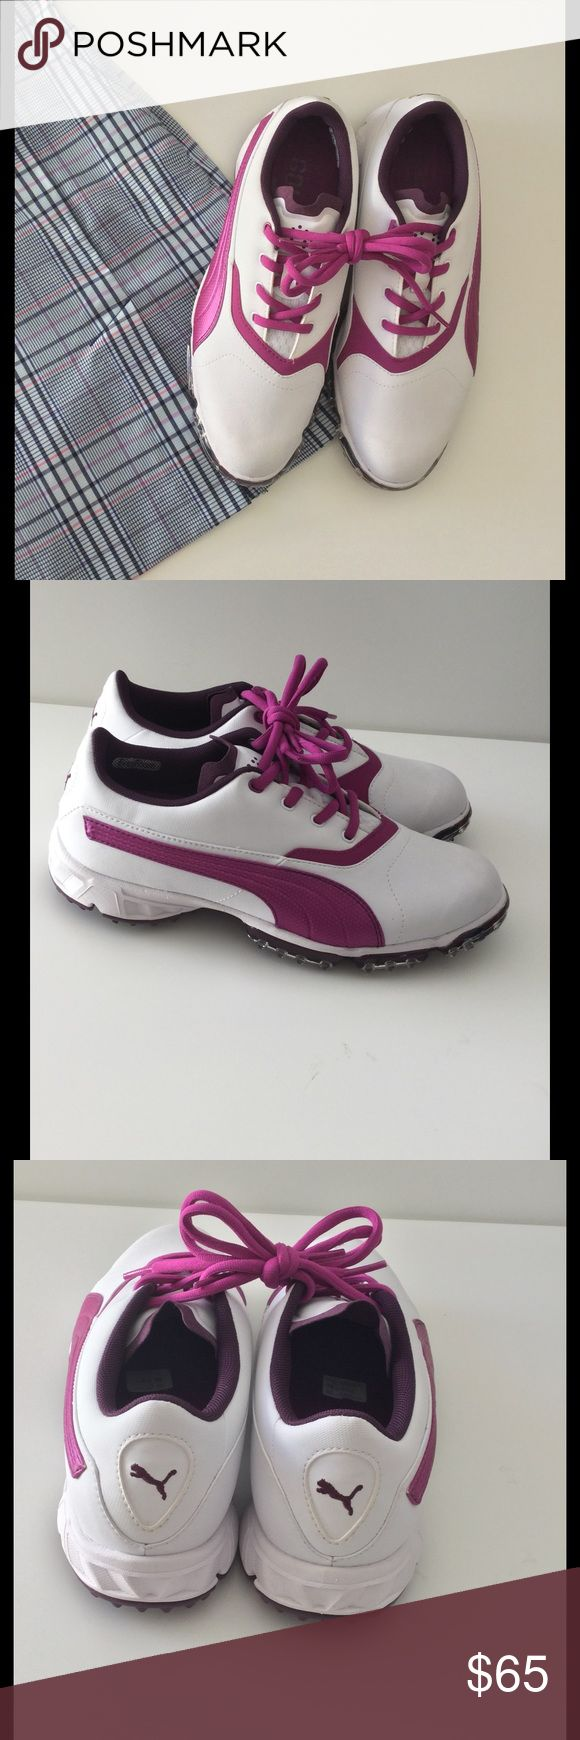 🆕 Puma Golf Shoes New The best golf shoes! Padded footbed w/ arch support & soft, padded tongue. White w/ magenta accents. Plastic cleats. Pictured golf skirt listed separately. Bundle discount. New without box.  🚭Smoke free home 🚫No trades please  😍 Thank you for shopping with me. Please ask all questions before purchase Puma Shoes Athletic Shoes